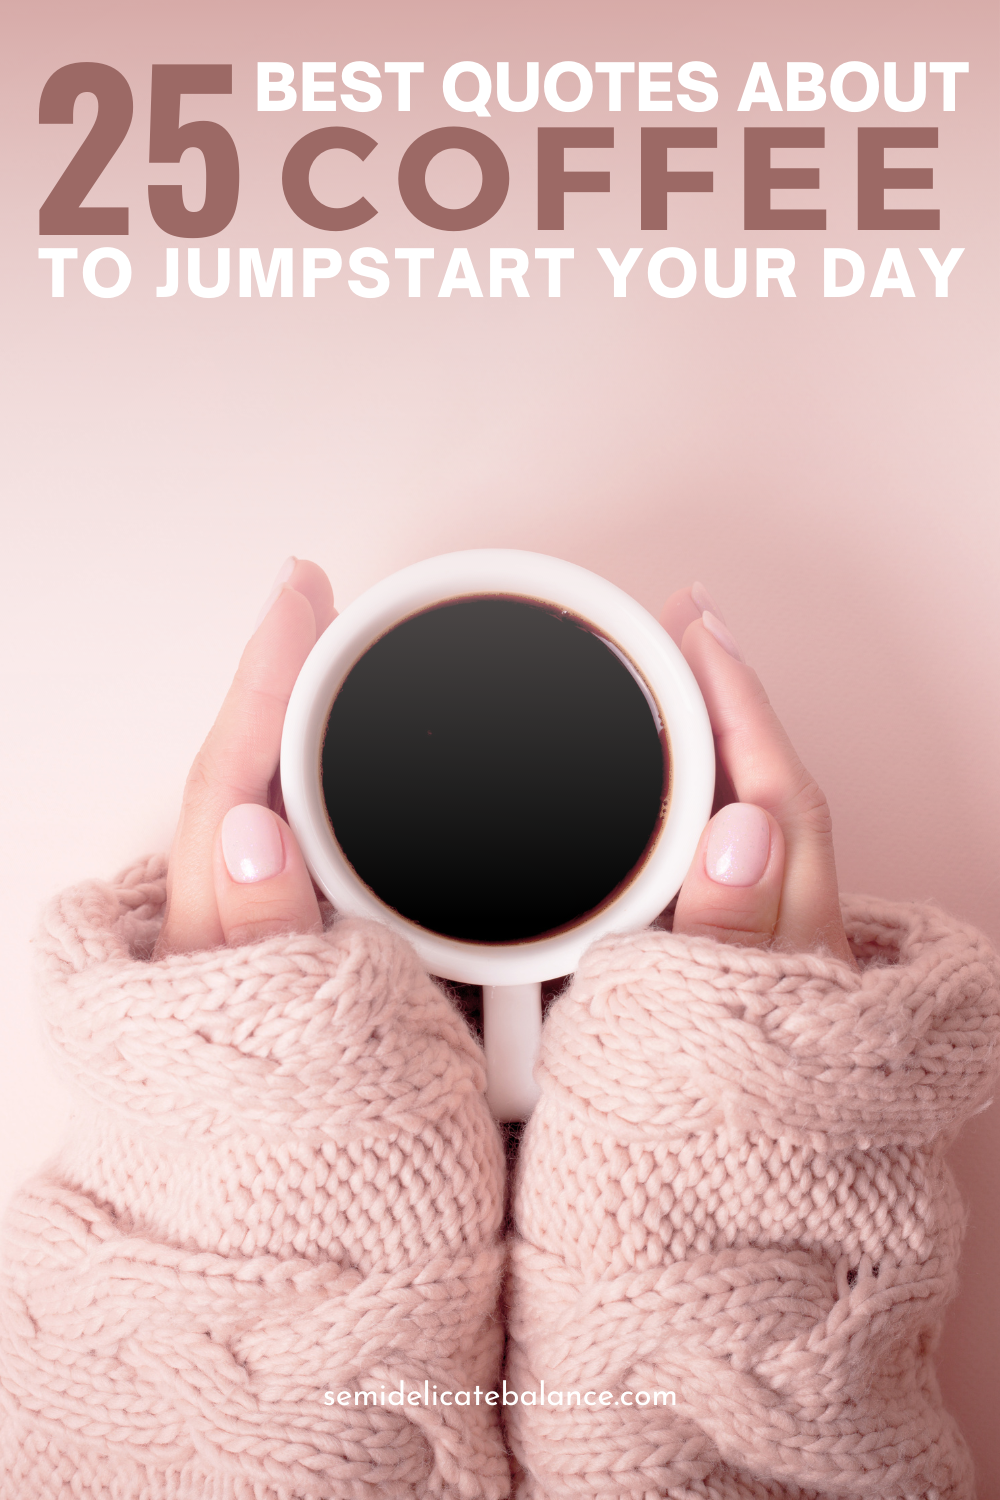 Best Quotes About Coffee To Jumpstart Your Day, Coffee sayings to share